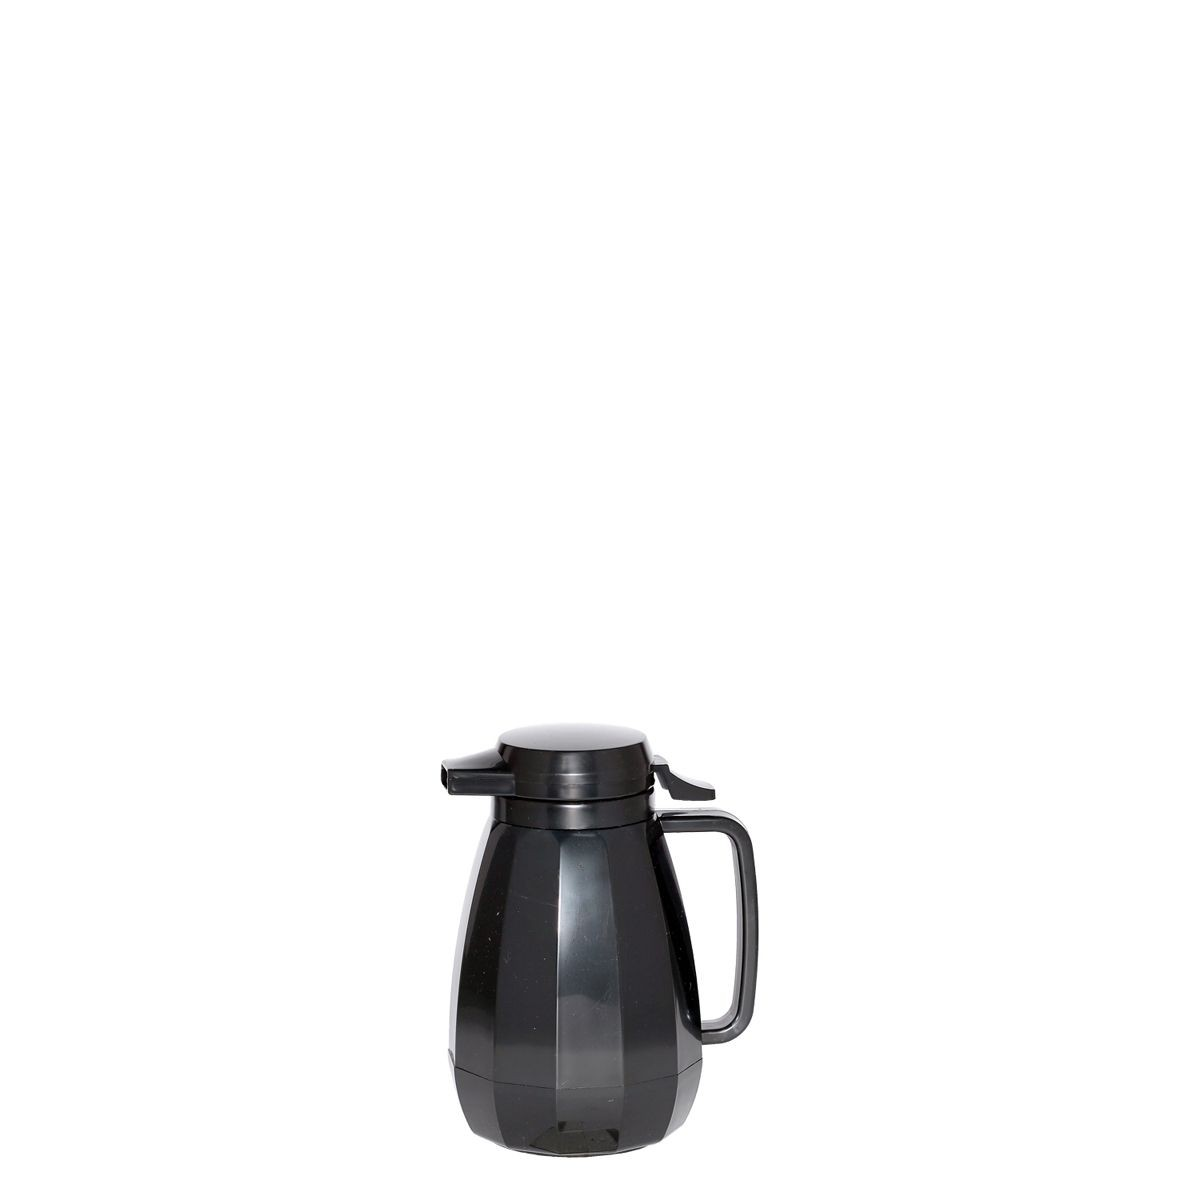 Service Ideas NG501BL New Generation Black Coffee Server, 0.6 Liter (20 oz.)